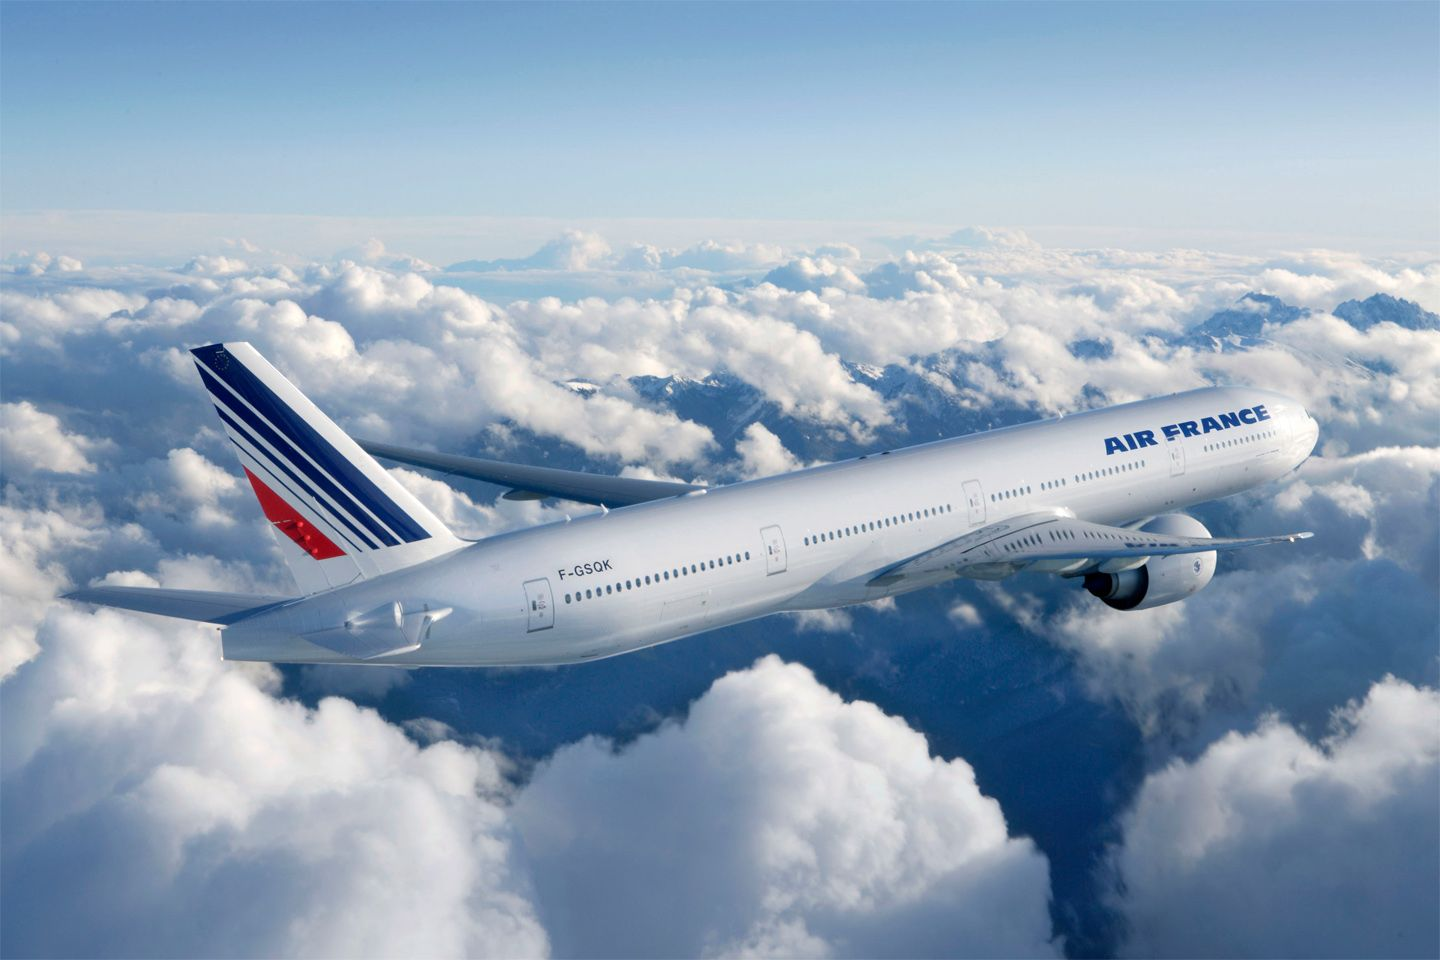 BOEING Airliner Aircraft Airplane Plane Jet Wallpaper